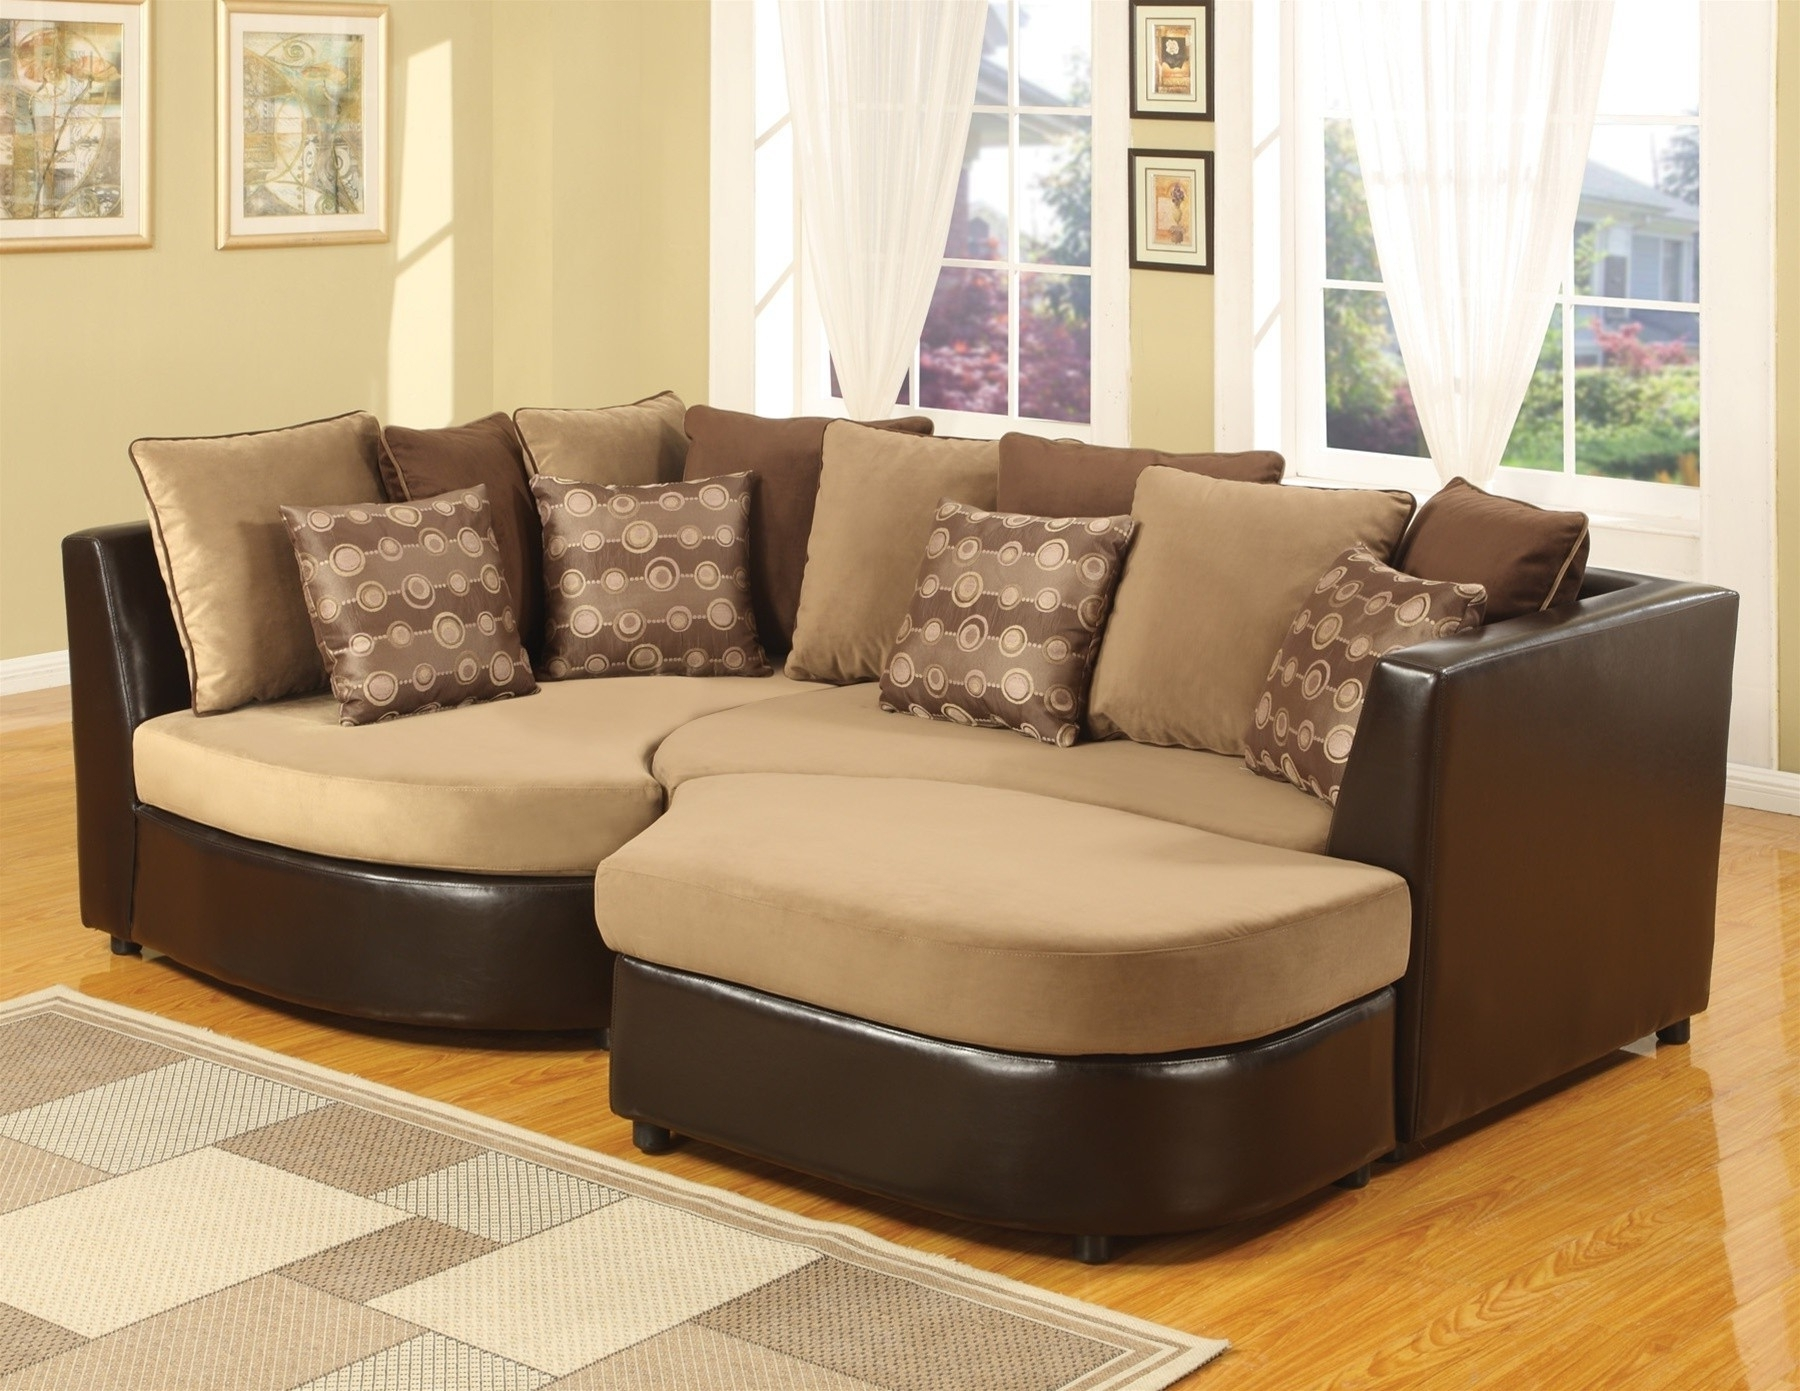 Free Oversized Sofas In Oversized Couch Comfy Sectional Sofas Deep Inside Favorite Sofas With Oversized Pillows (View 1 of 15)